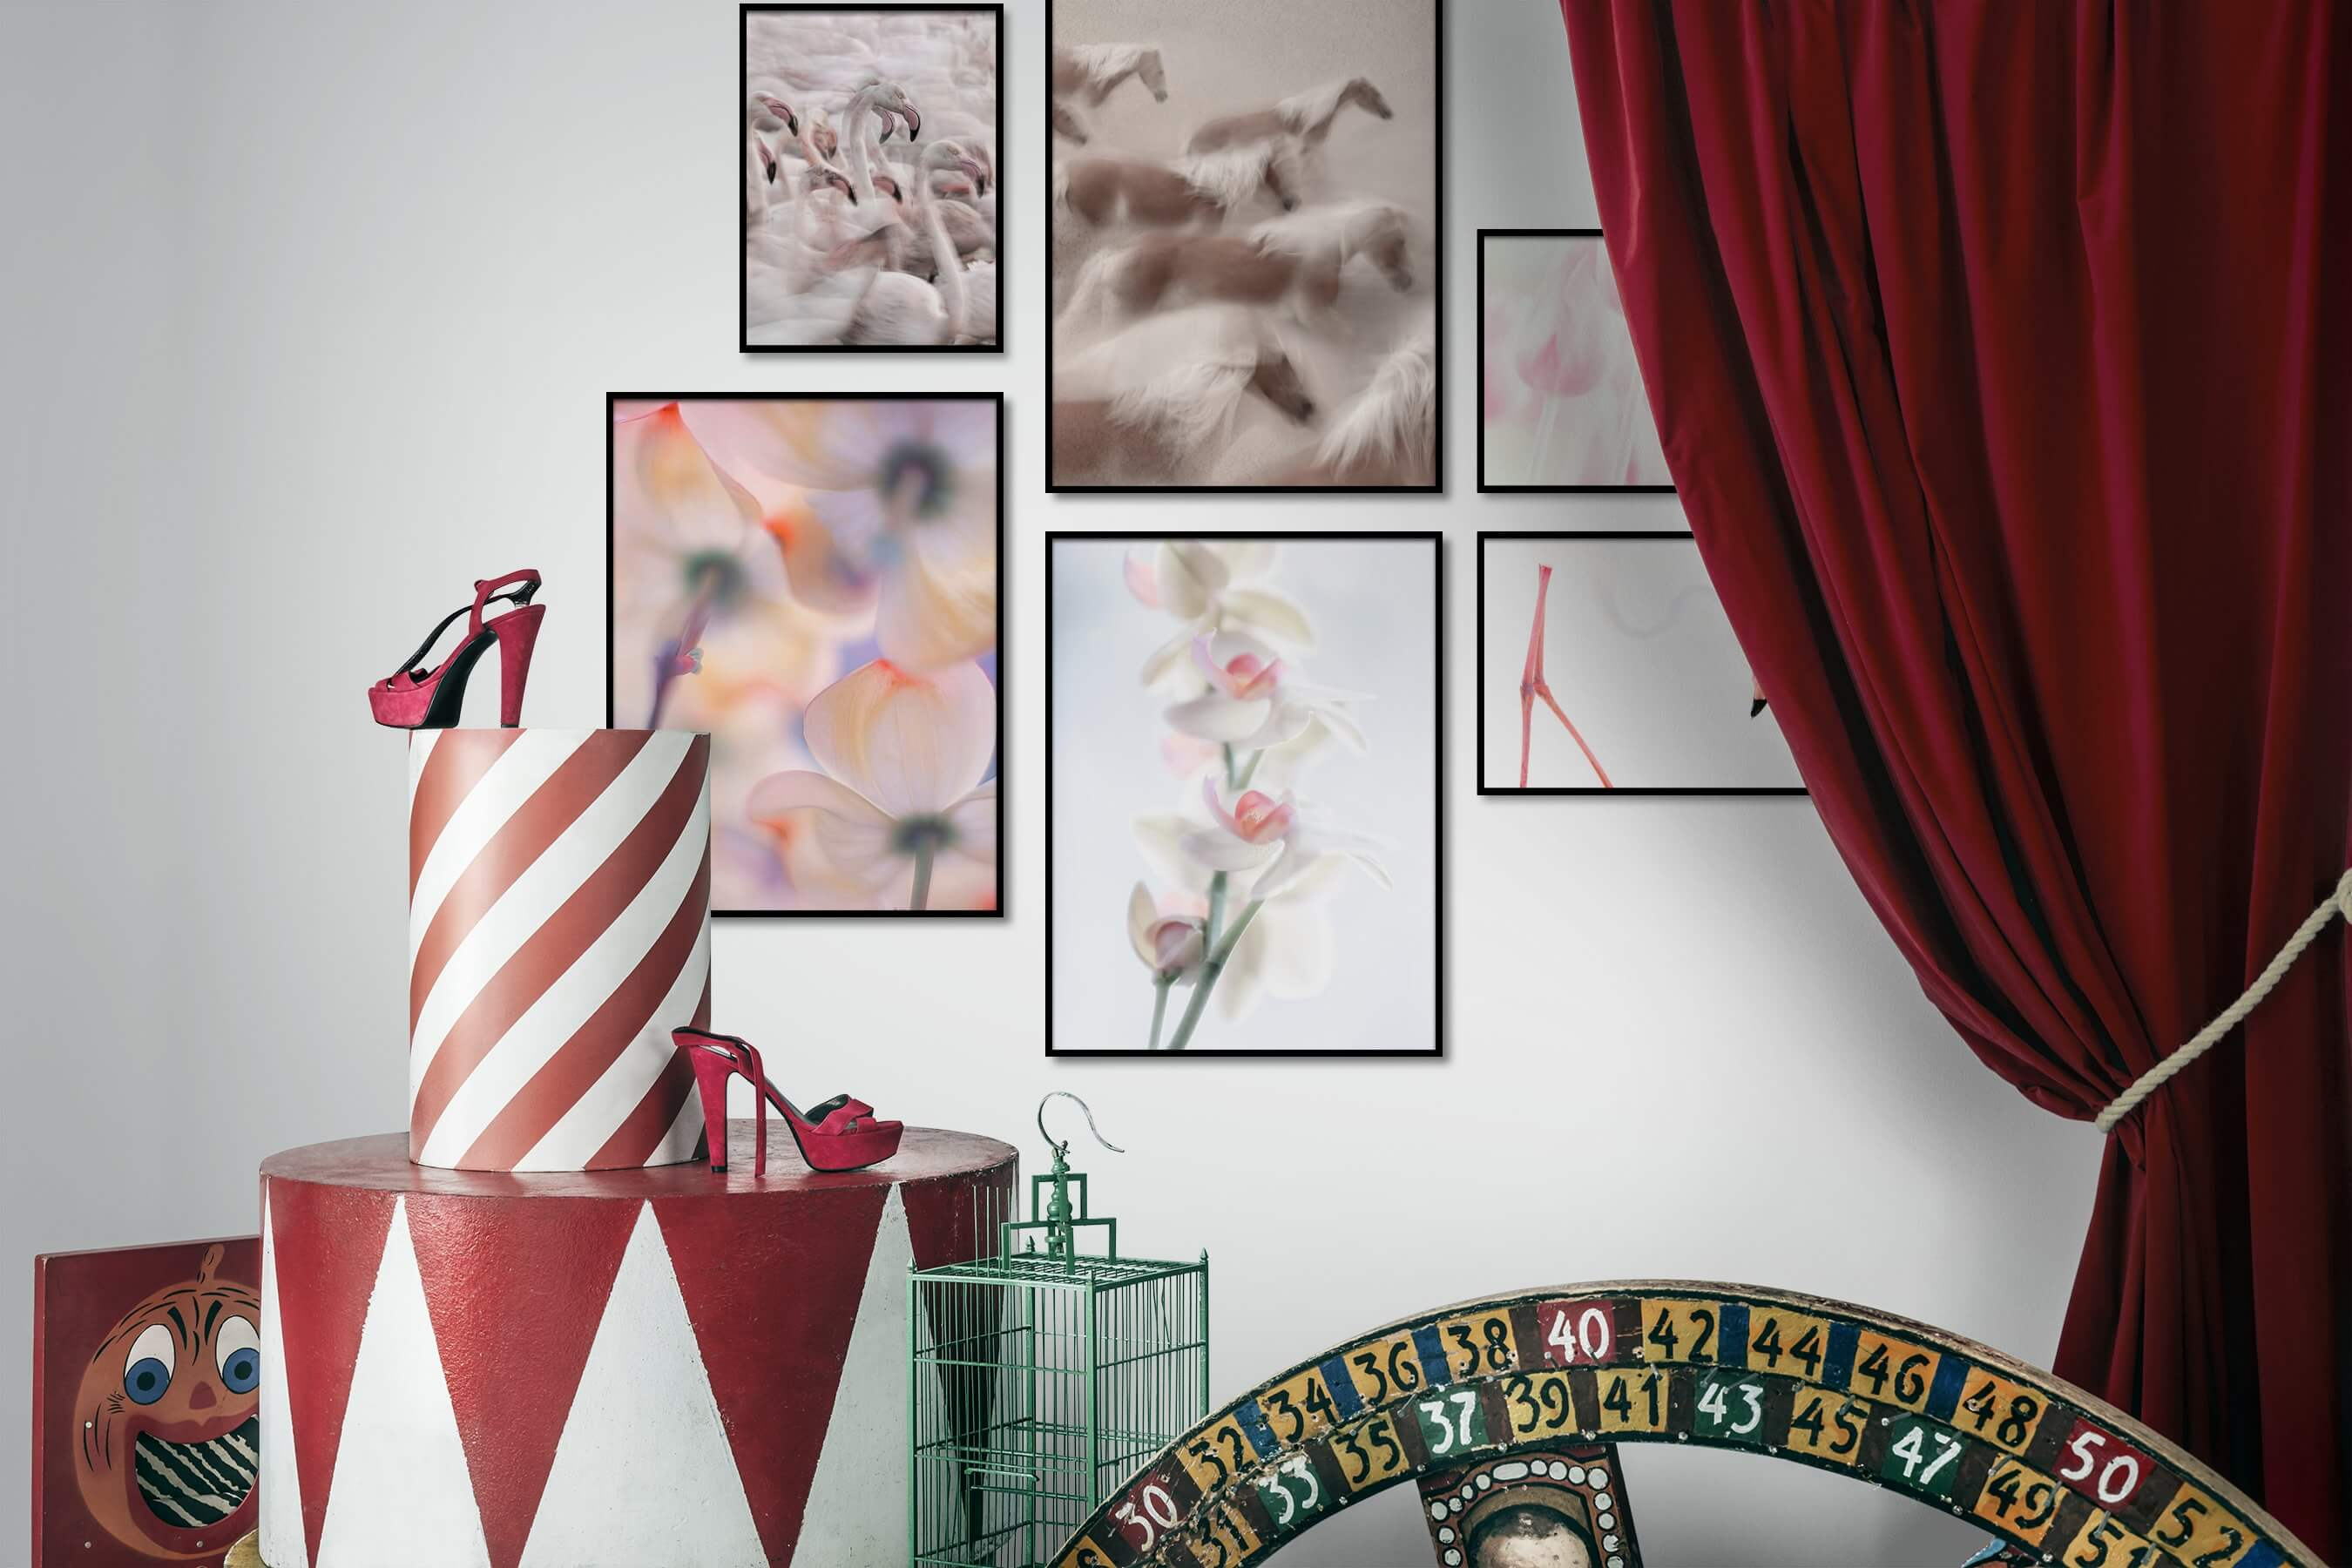 Gallery wall idea with six framed pictures arranged on a wall depicting For the Maximalist, Animals, Country Life, For the Moderate, Flowers & Plants, Mindfulness, Bright Tones, and For the Minimalist